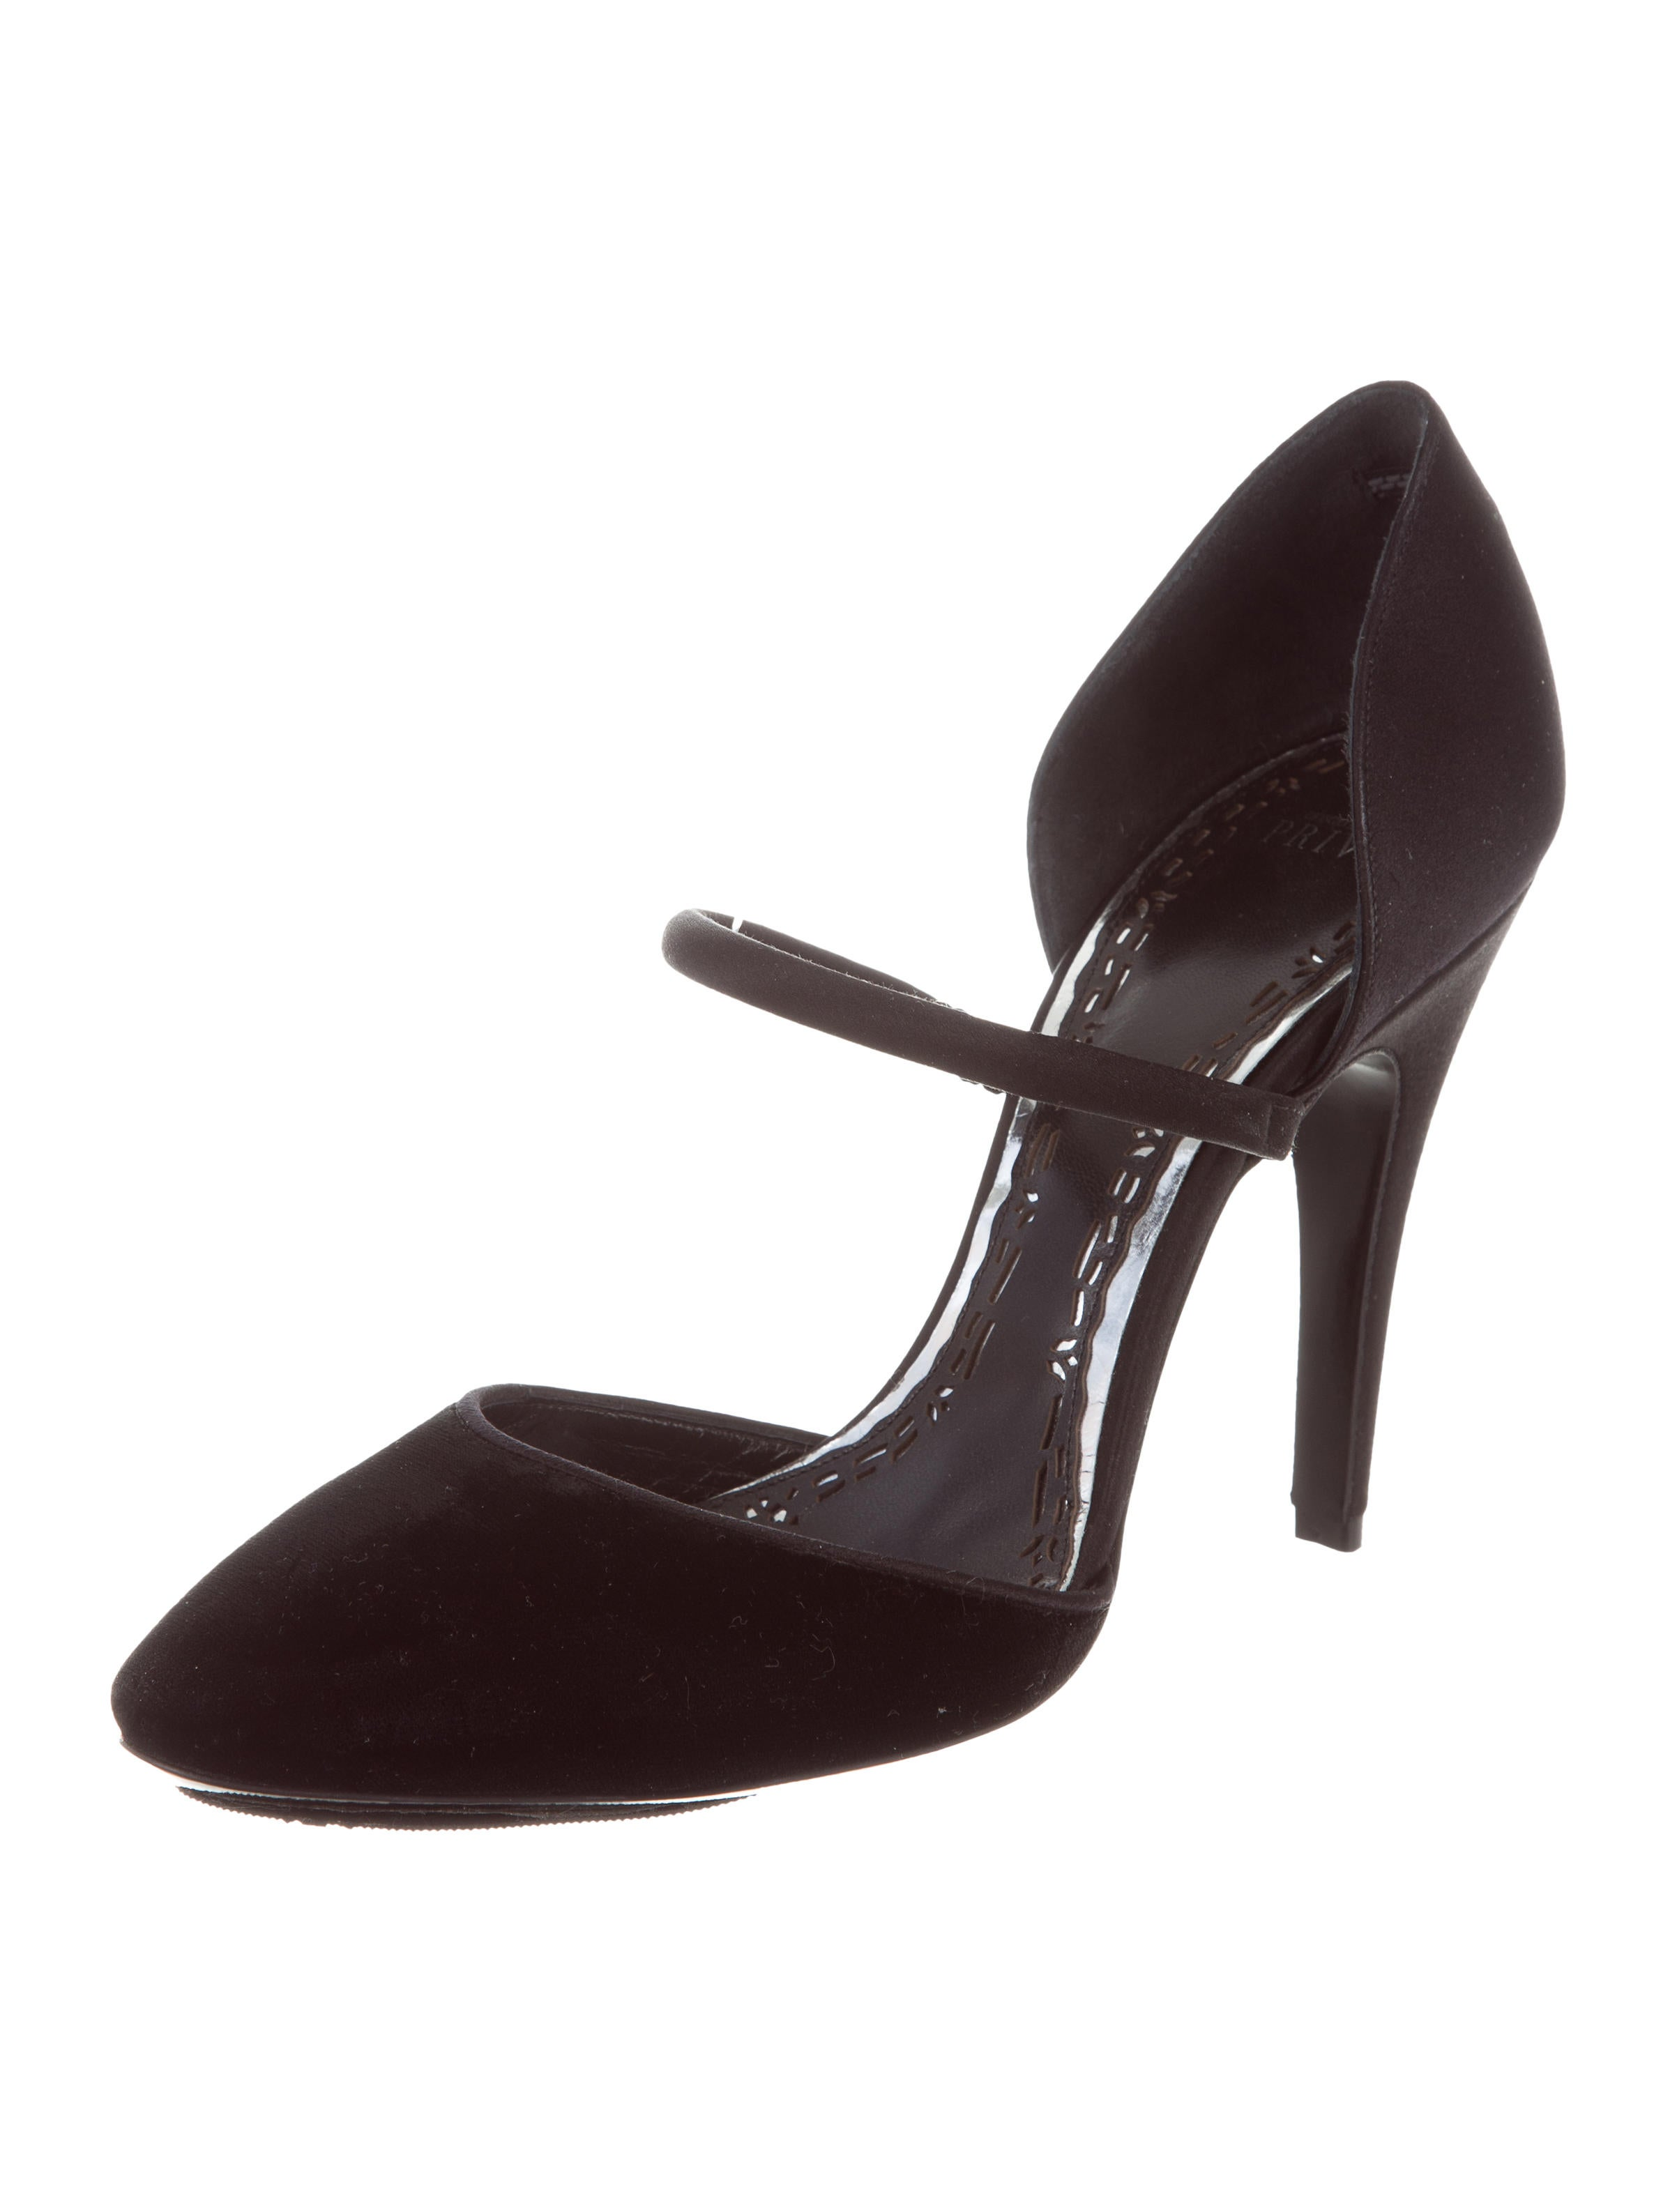 Giorgio Armani Privé Velvet Semi Pointed-Toe Pumps outlet locations for sale YCtvPxzR7